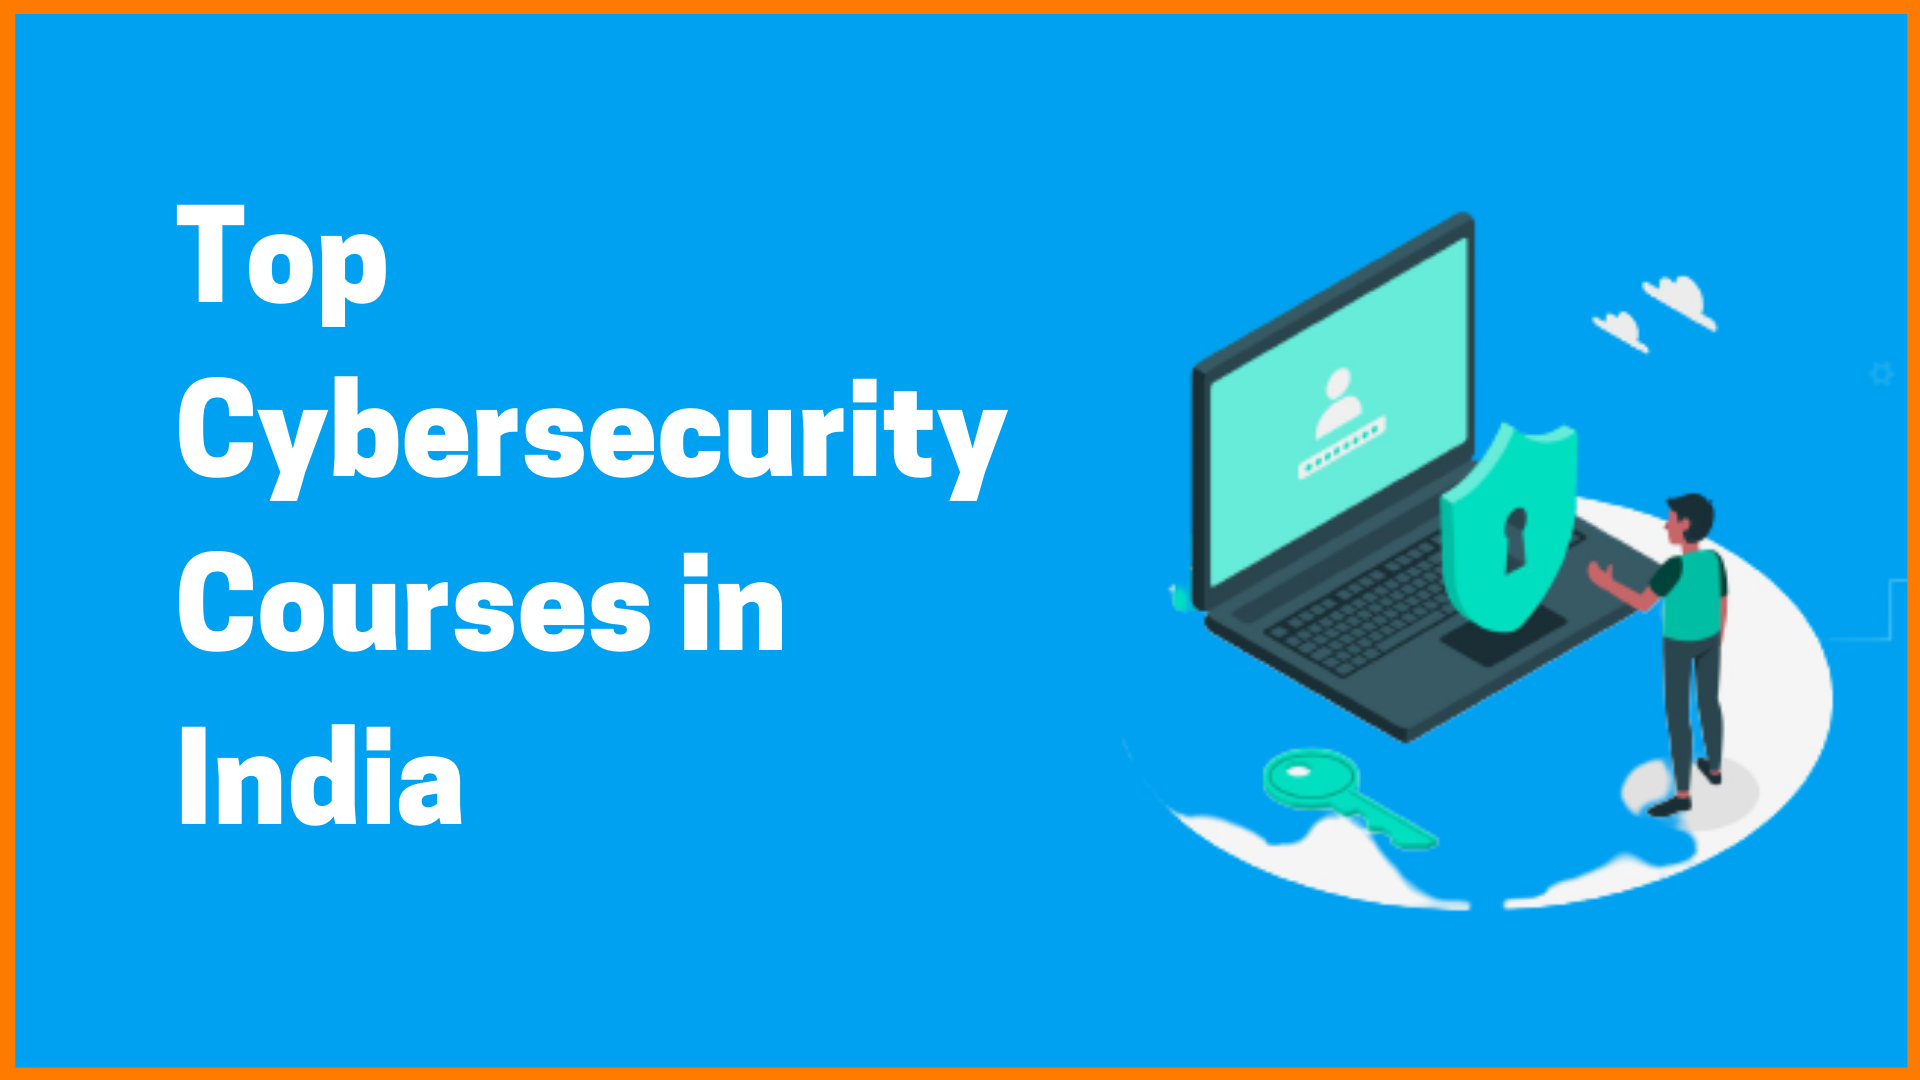 Top Cybersecurity Courses in India